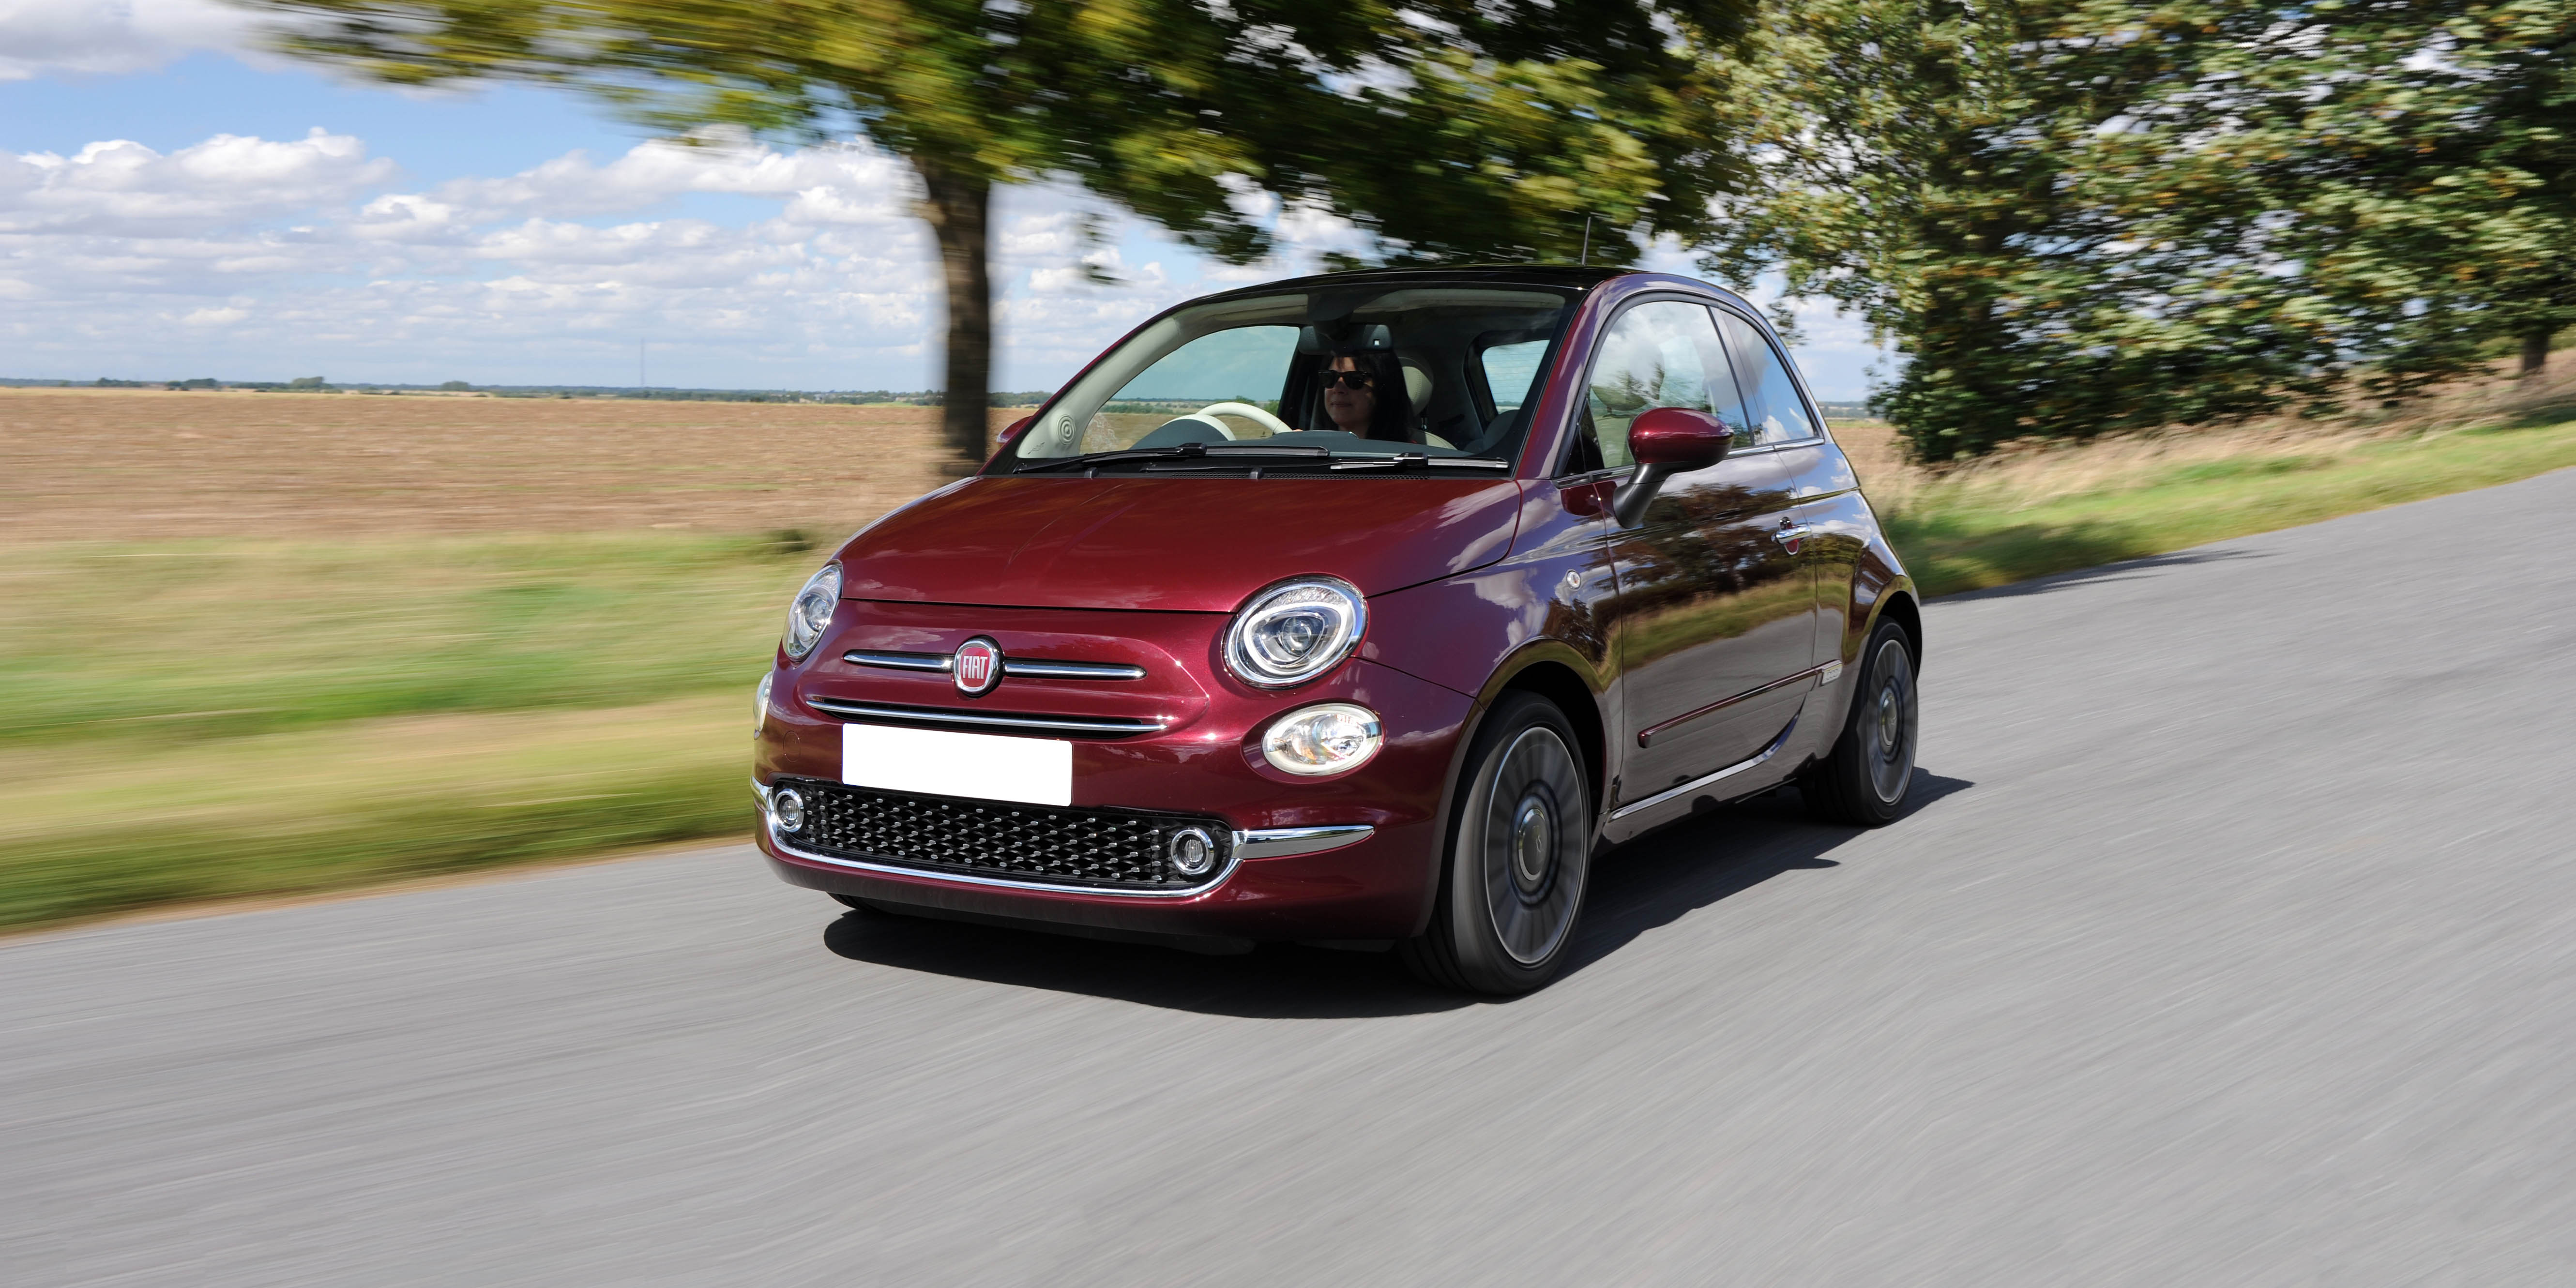 new fiat 500 review | carwow